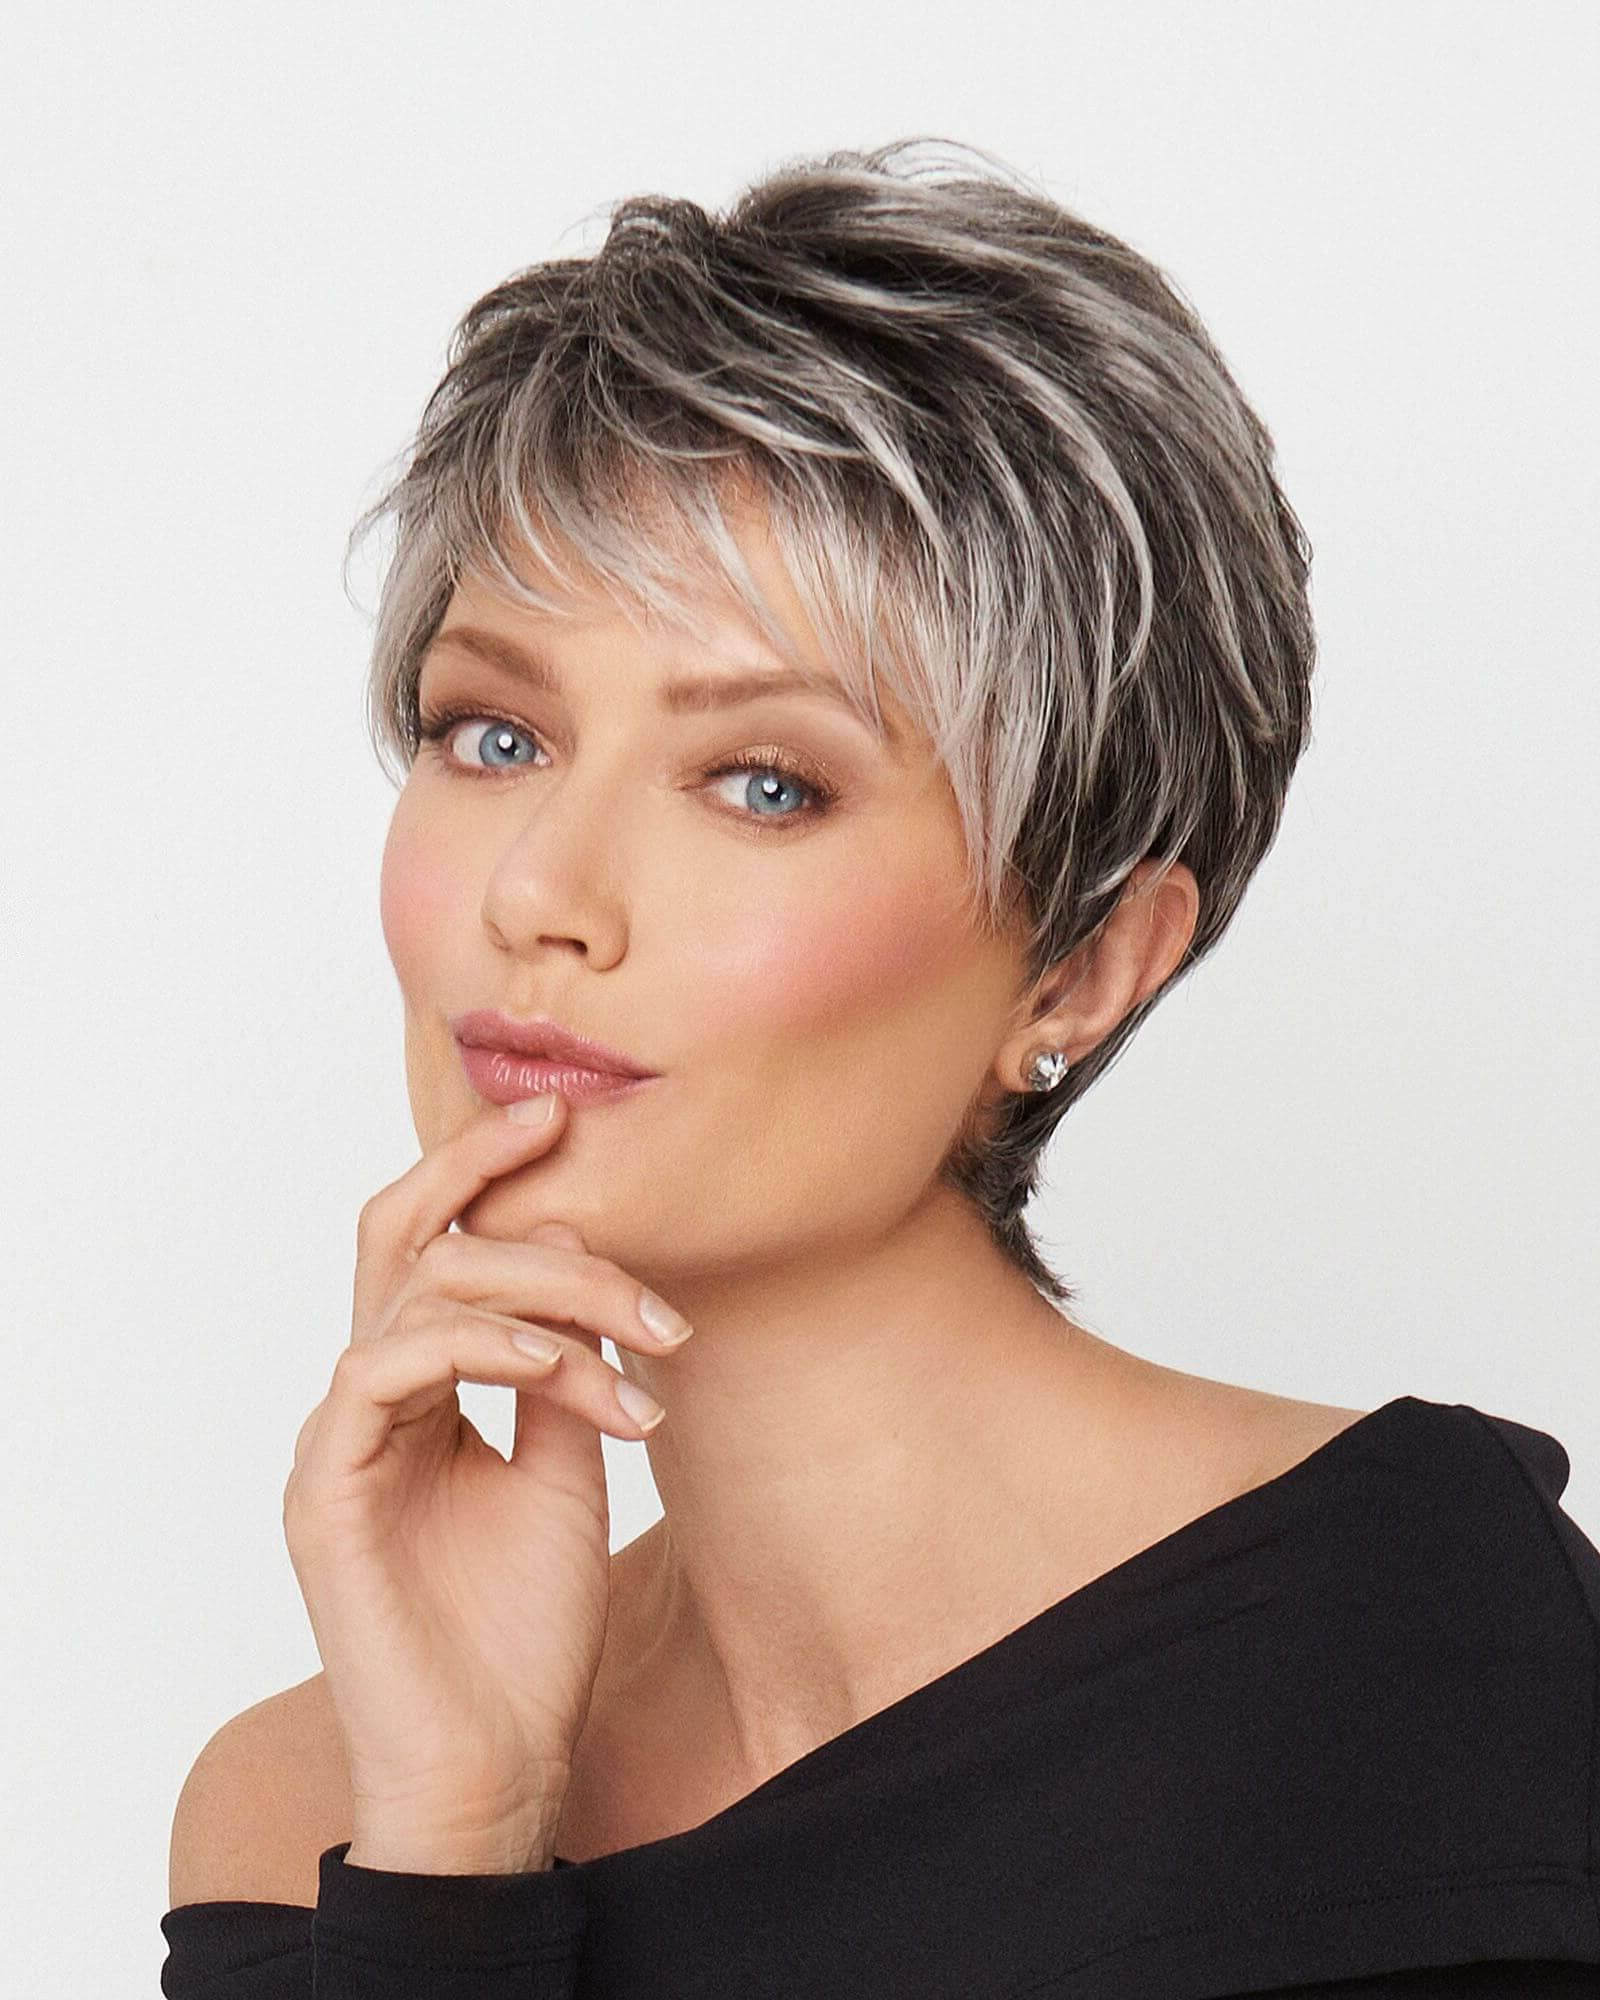 50 Pixie Haircuts You'll See Trending In 2019 With Classy Pixie Haircuts (View 4 of 20)